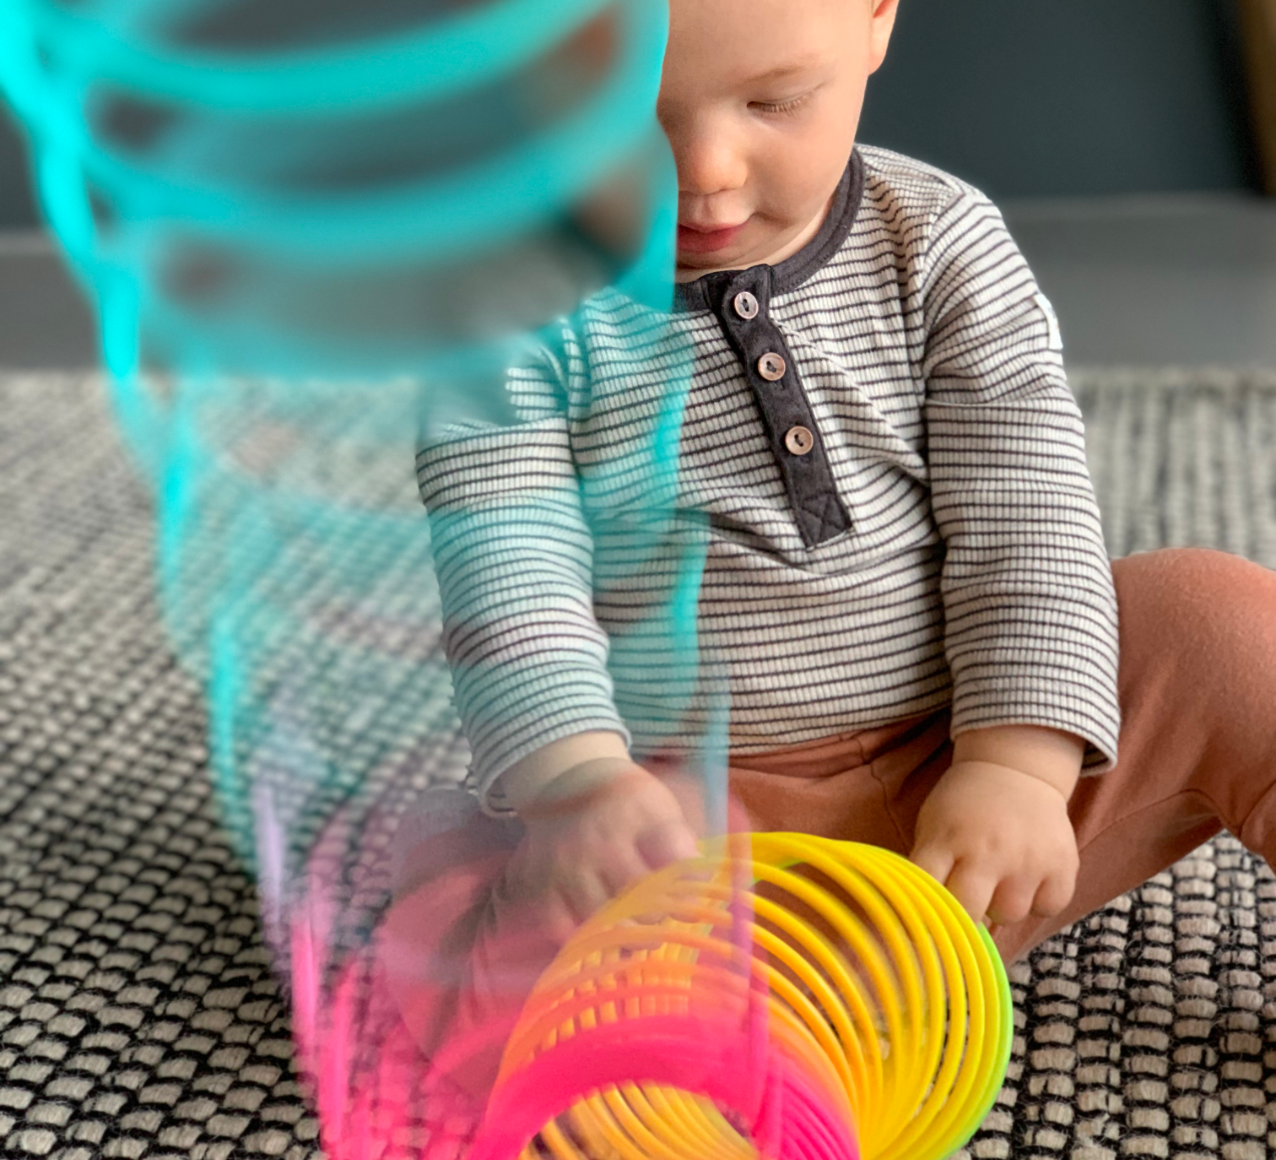 Refresh your baby's toys to help develop new motor skills